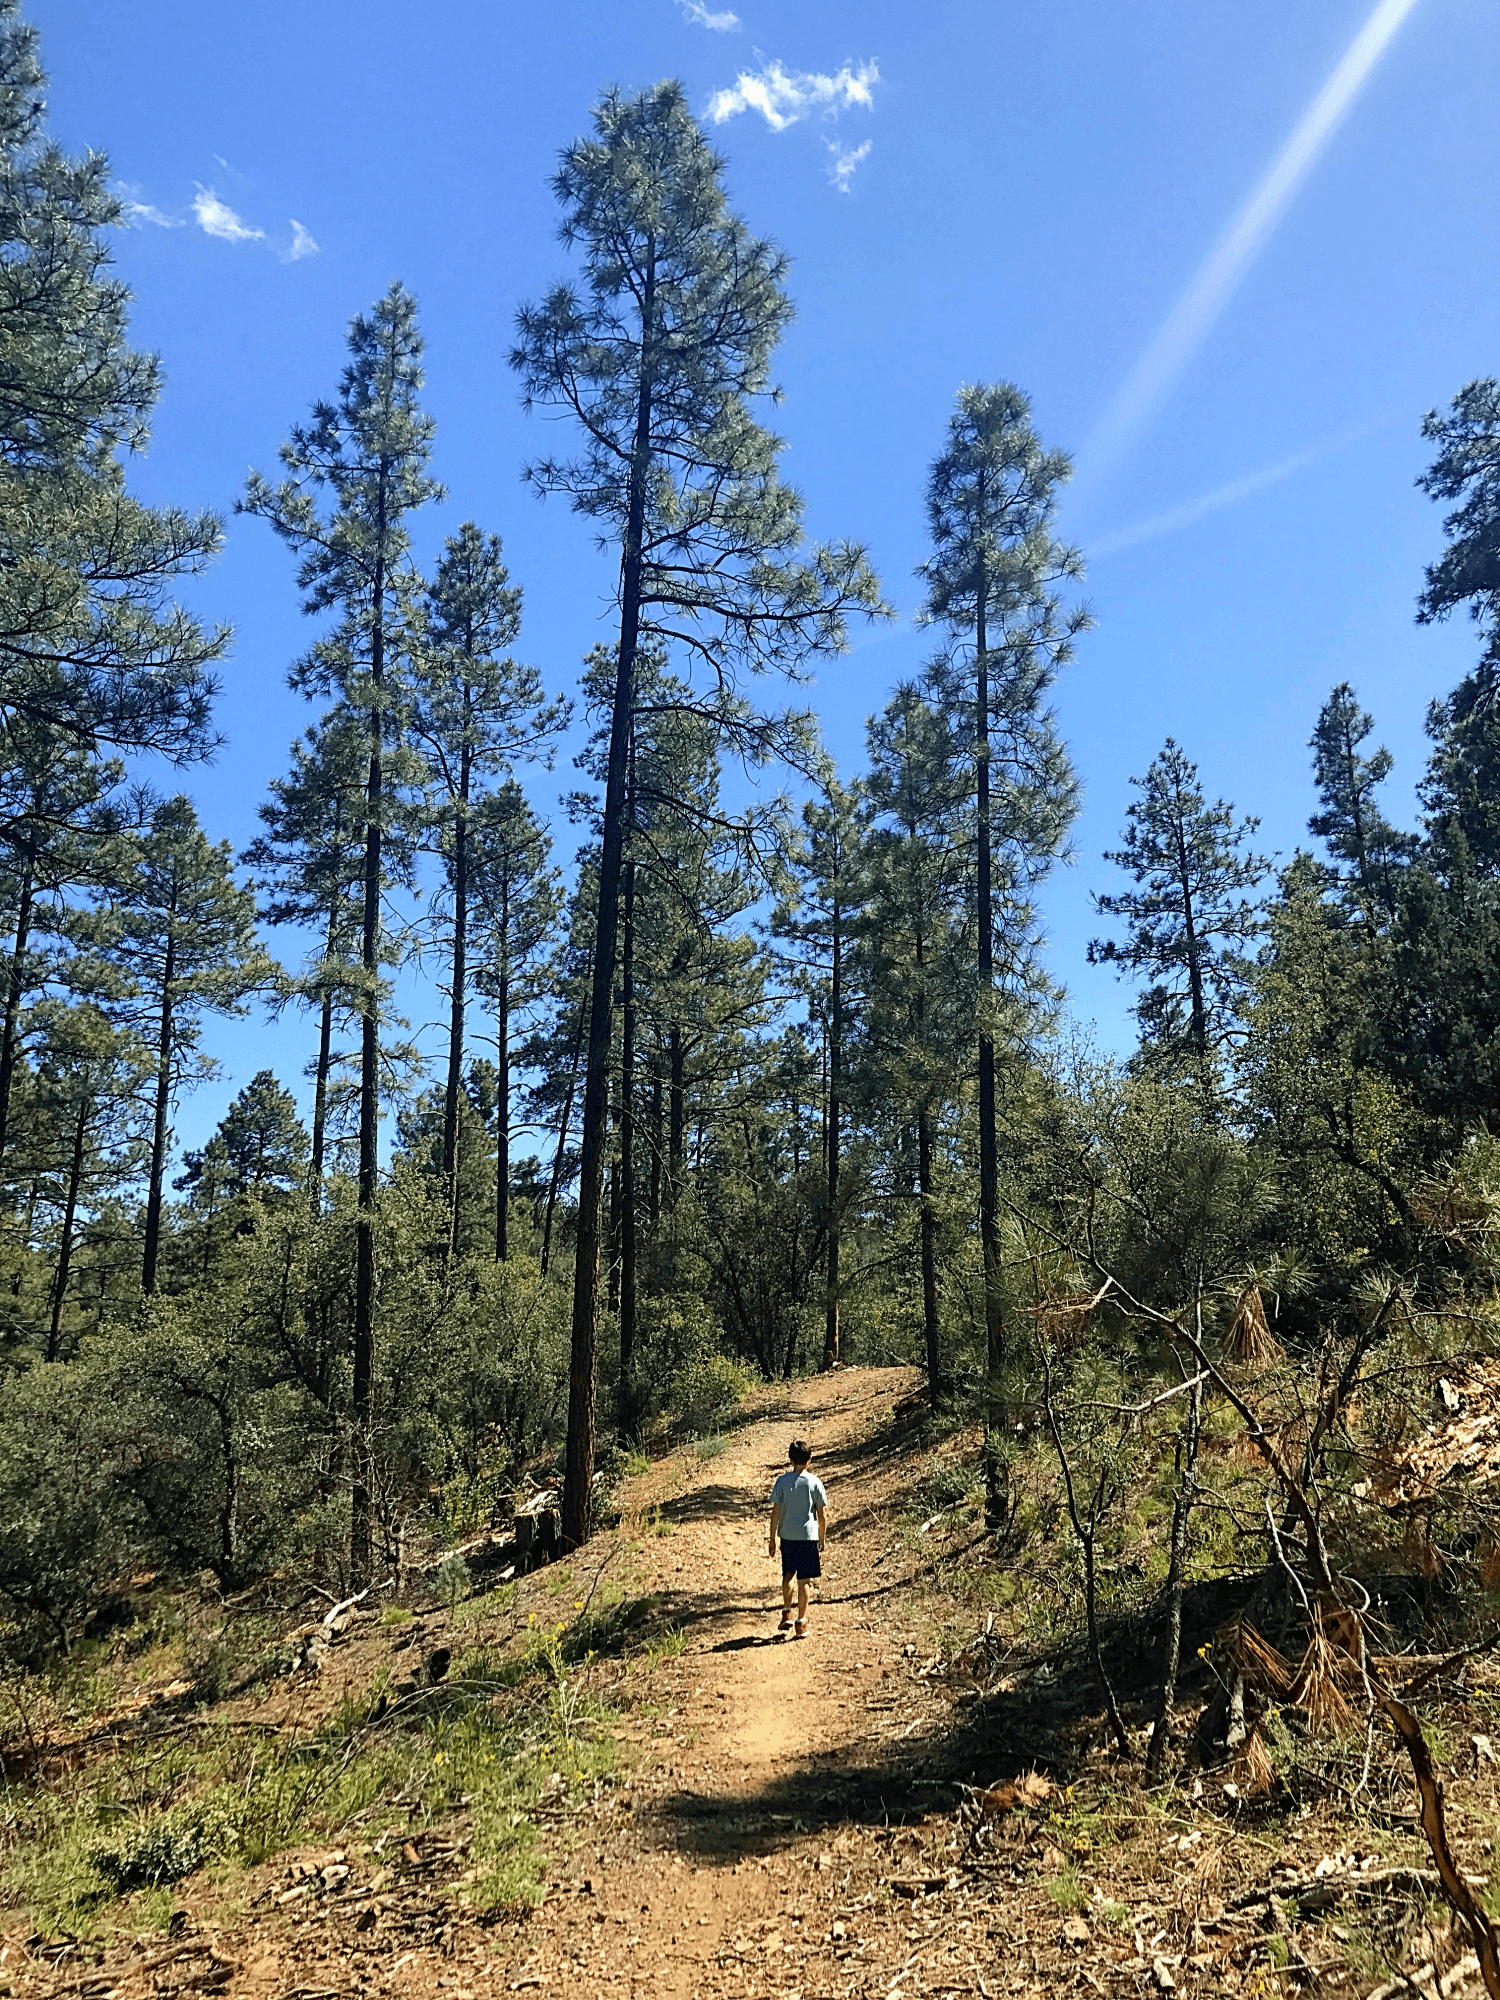 Hiking Highlands Center's trails with my son was a highlight of our trip to Prescott with kids